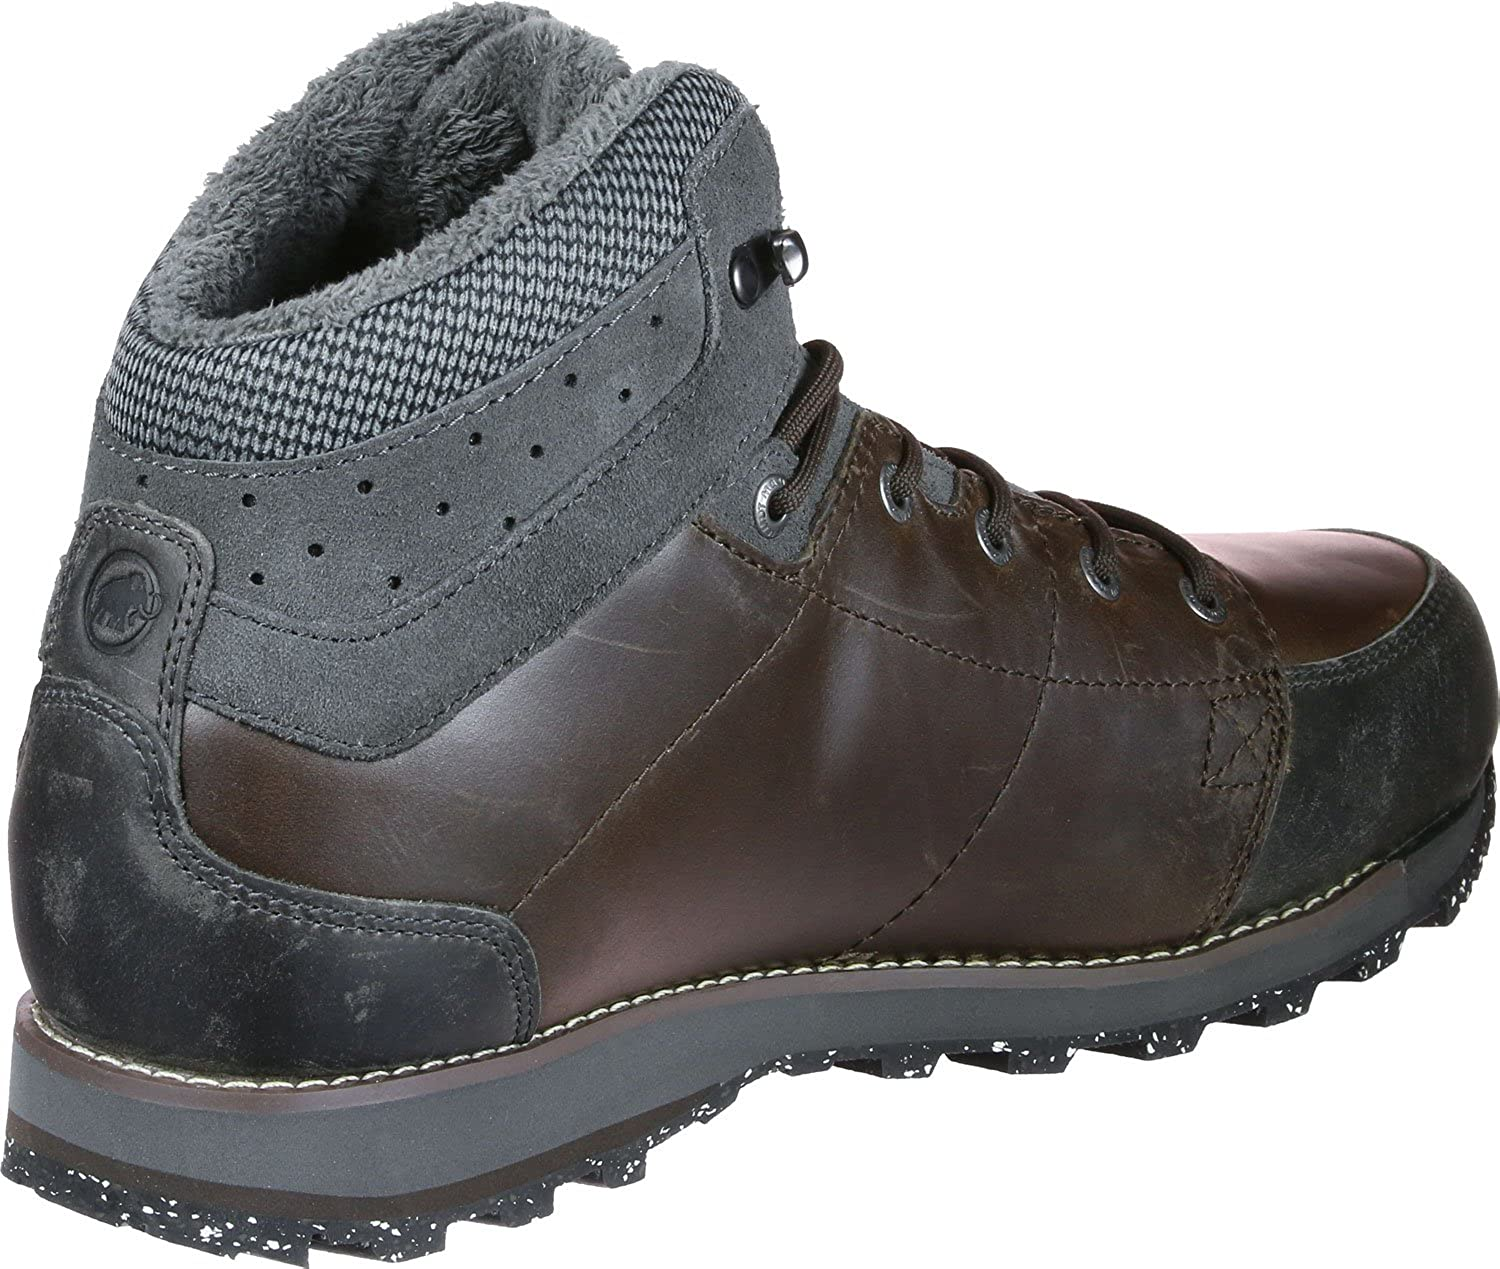 US 8 3020-05840-7079-US 8 Mammut Chamuera Mid Waterproof Hiking Boot Mens Coffee-Graphite